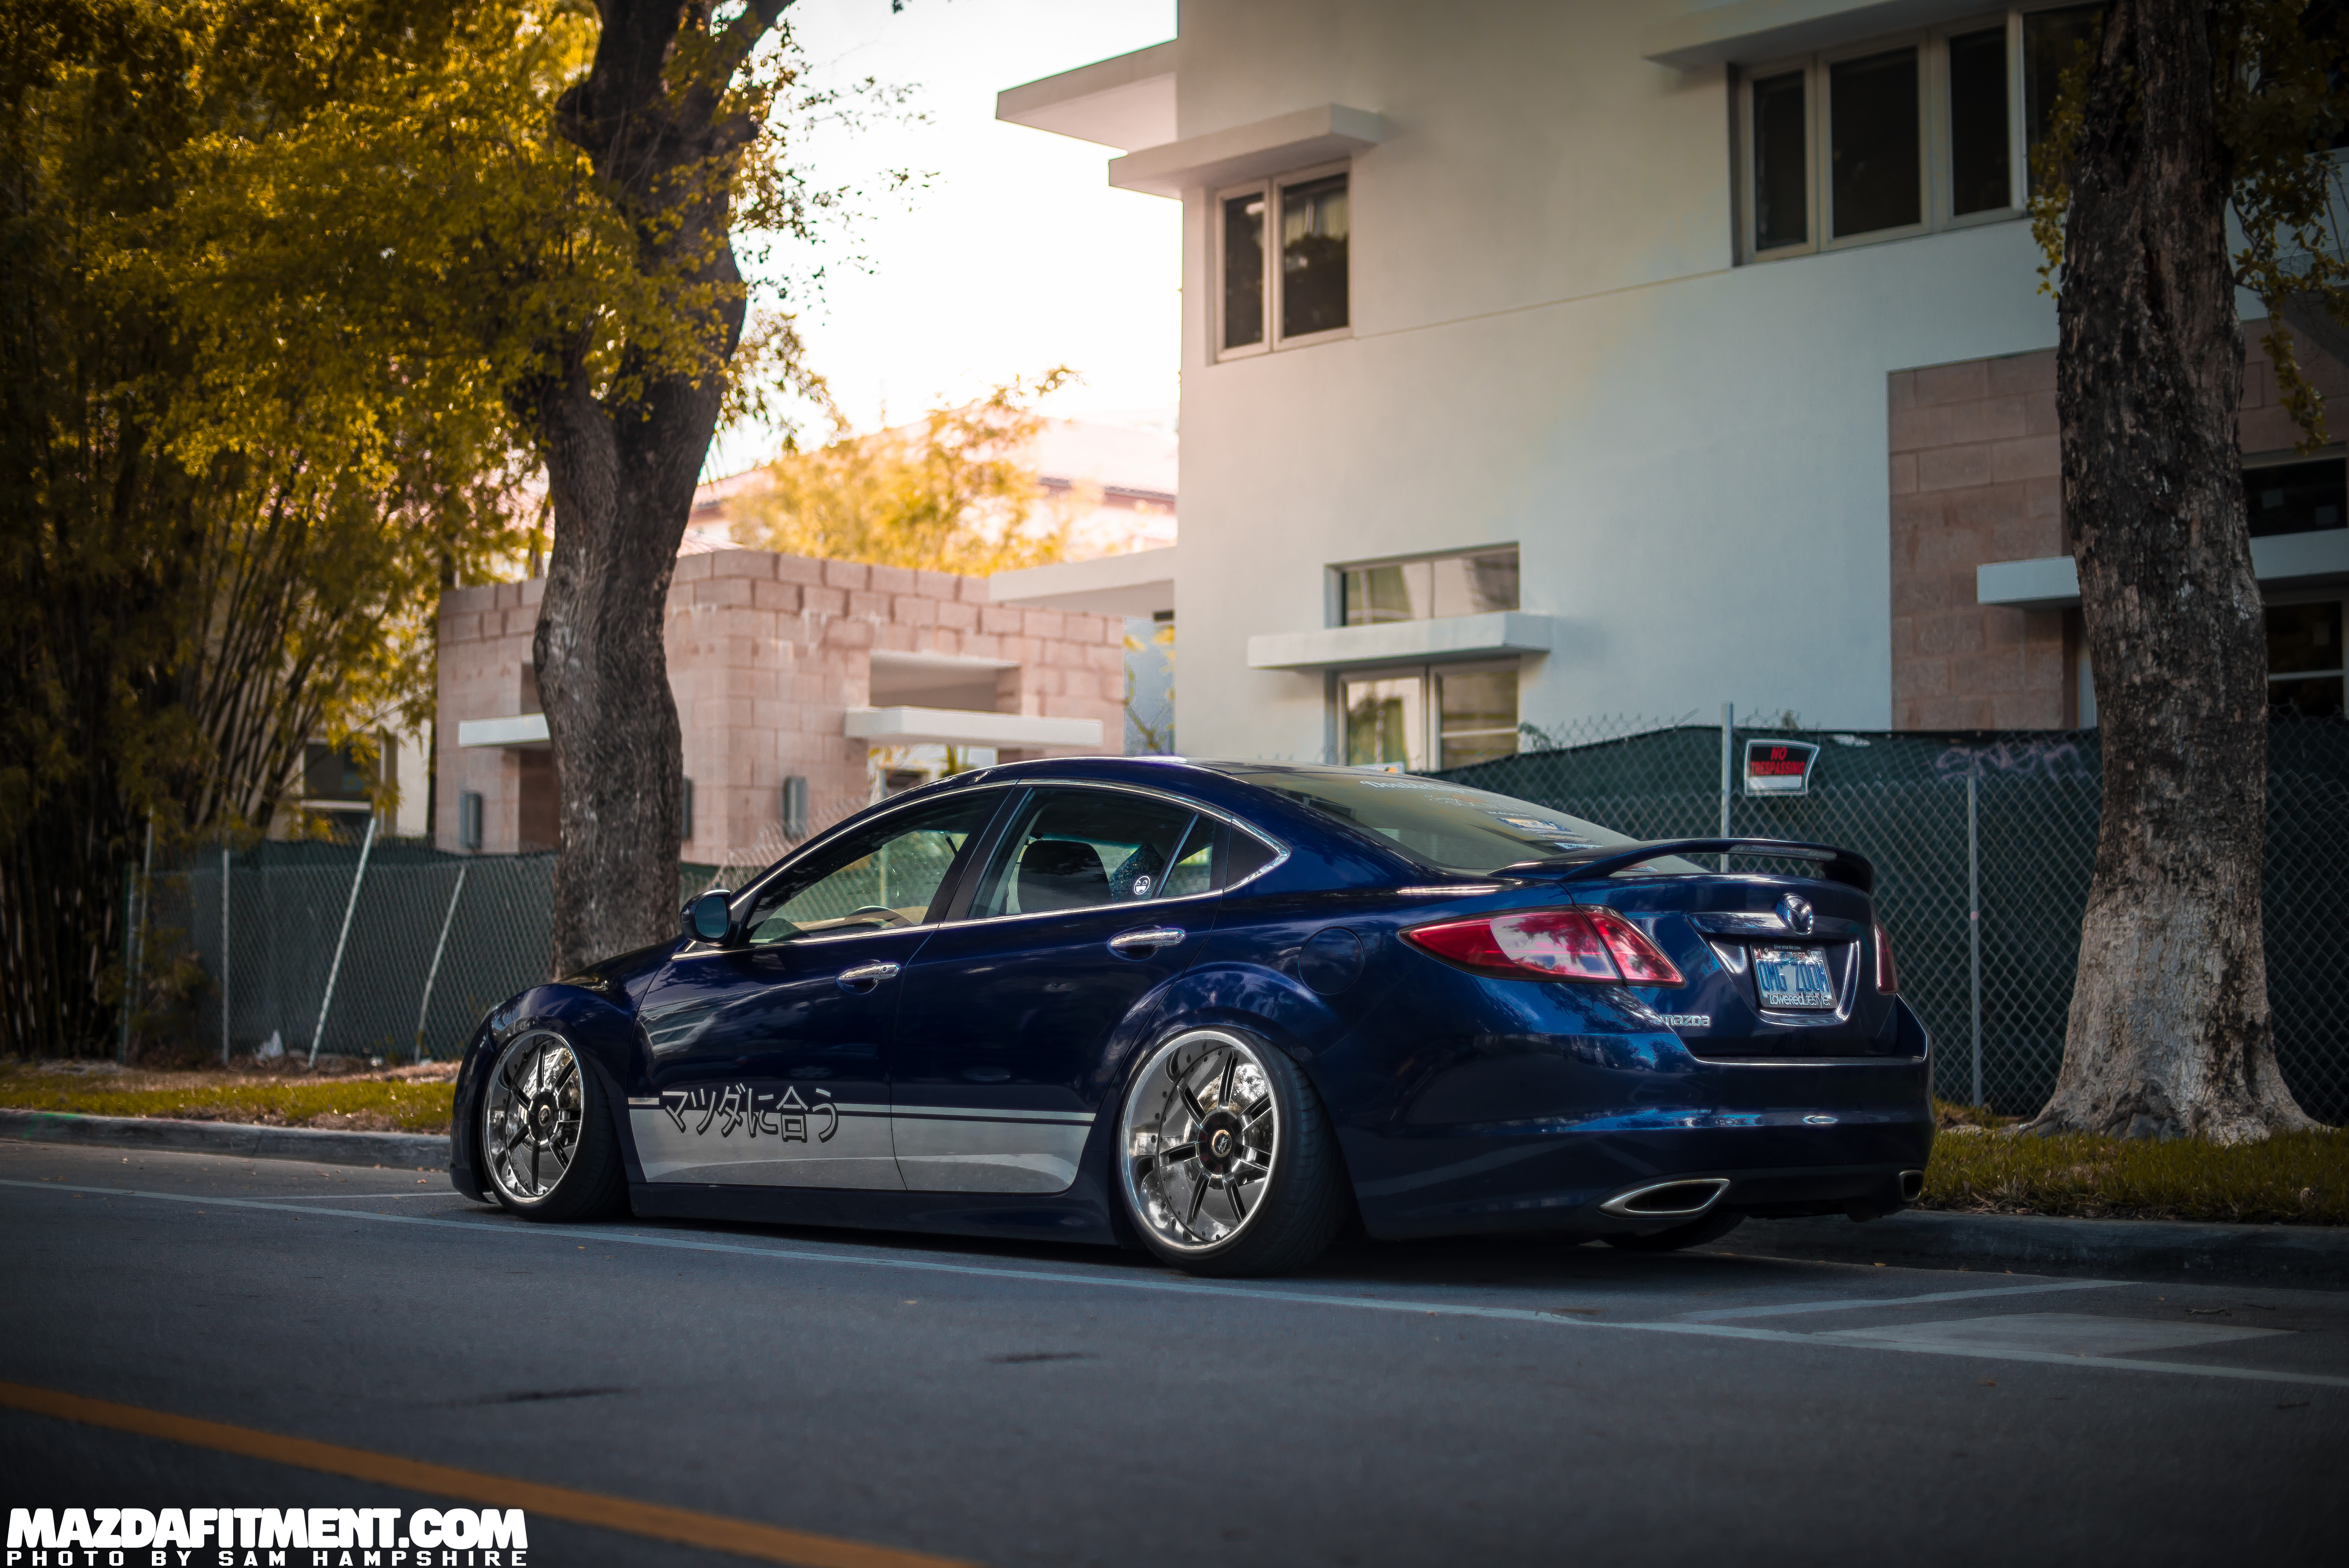 coilovers page 2 mazda fitment. Black Bedroom Furniture Sets. Home Design Ideas